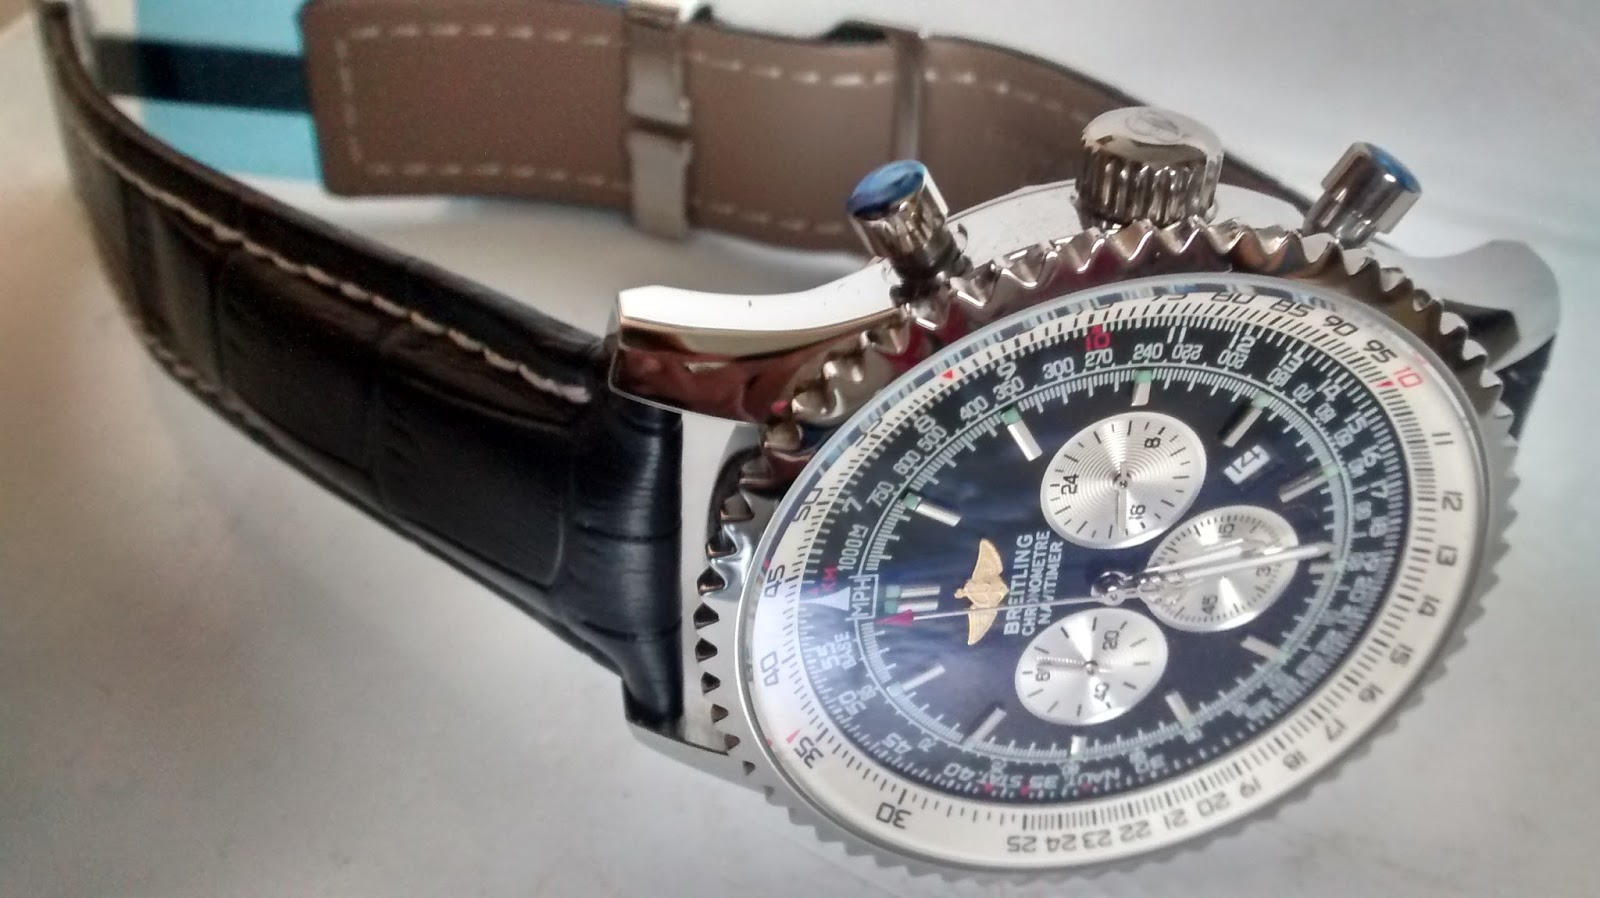 Breitling Leather Black Watch Chronometre Navitimer Watch Price 4500